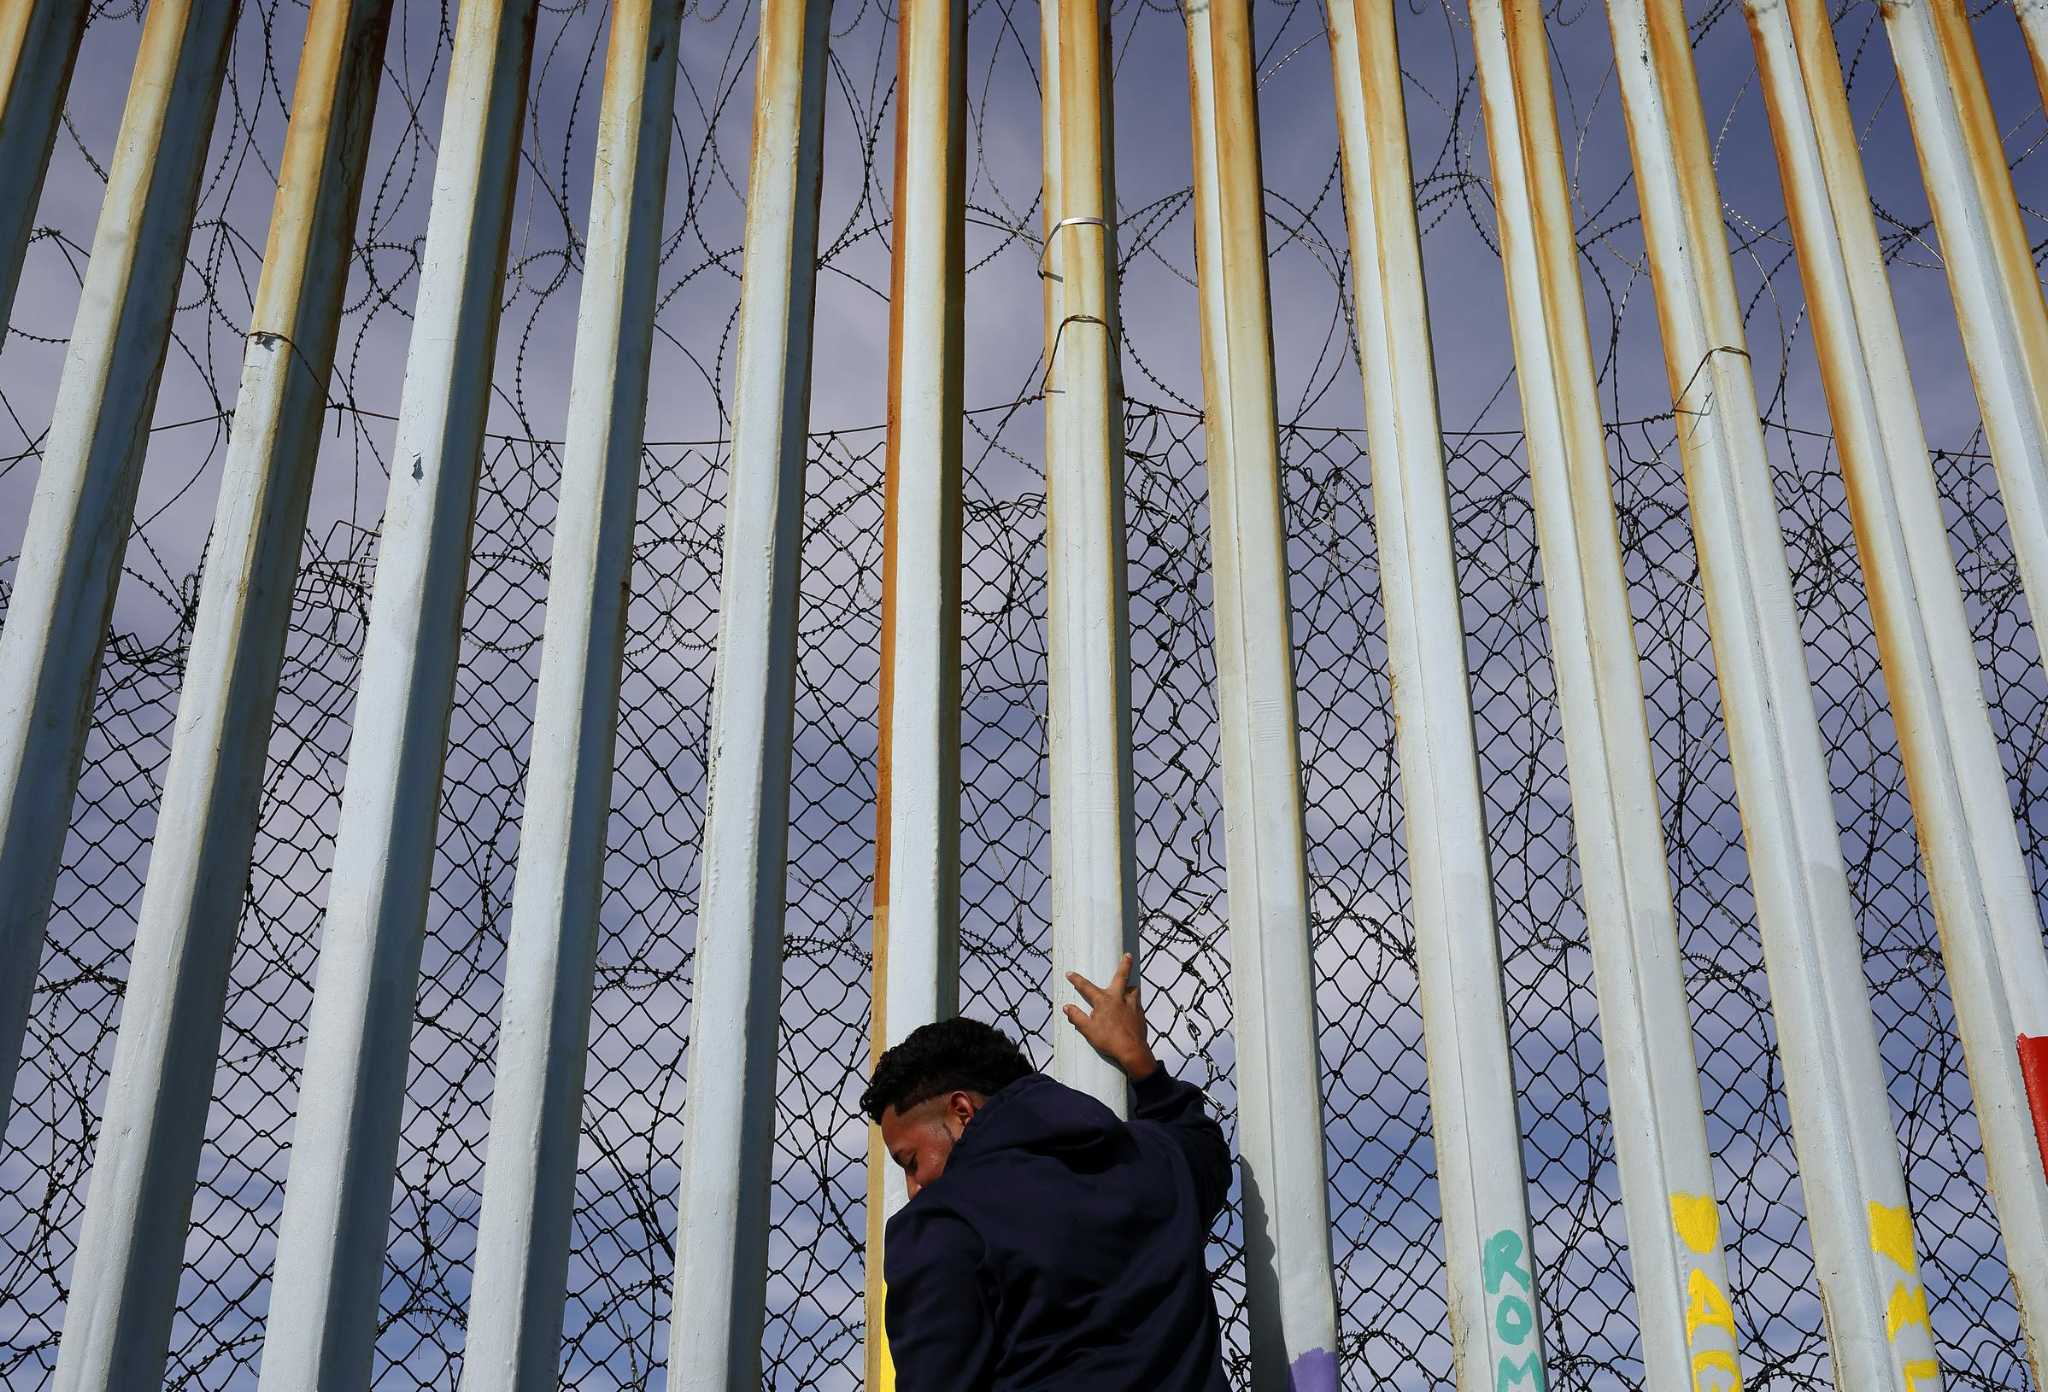 Trump's wall is merely fear in three dimensions [Opinion]